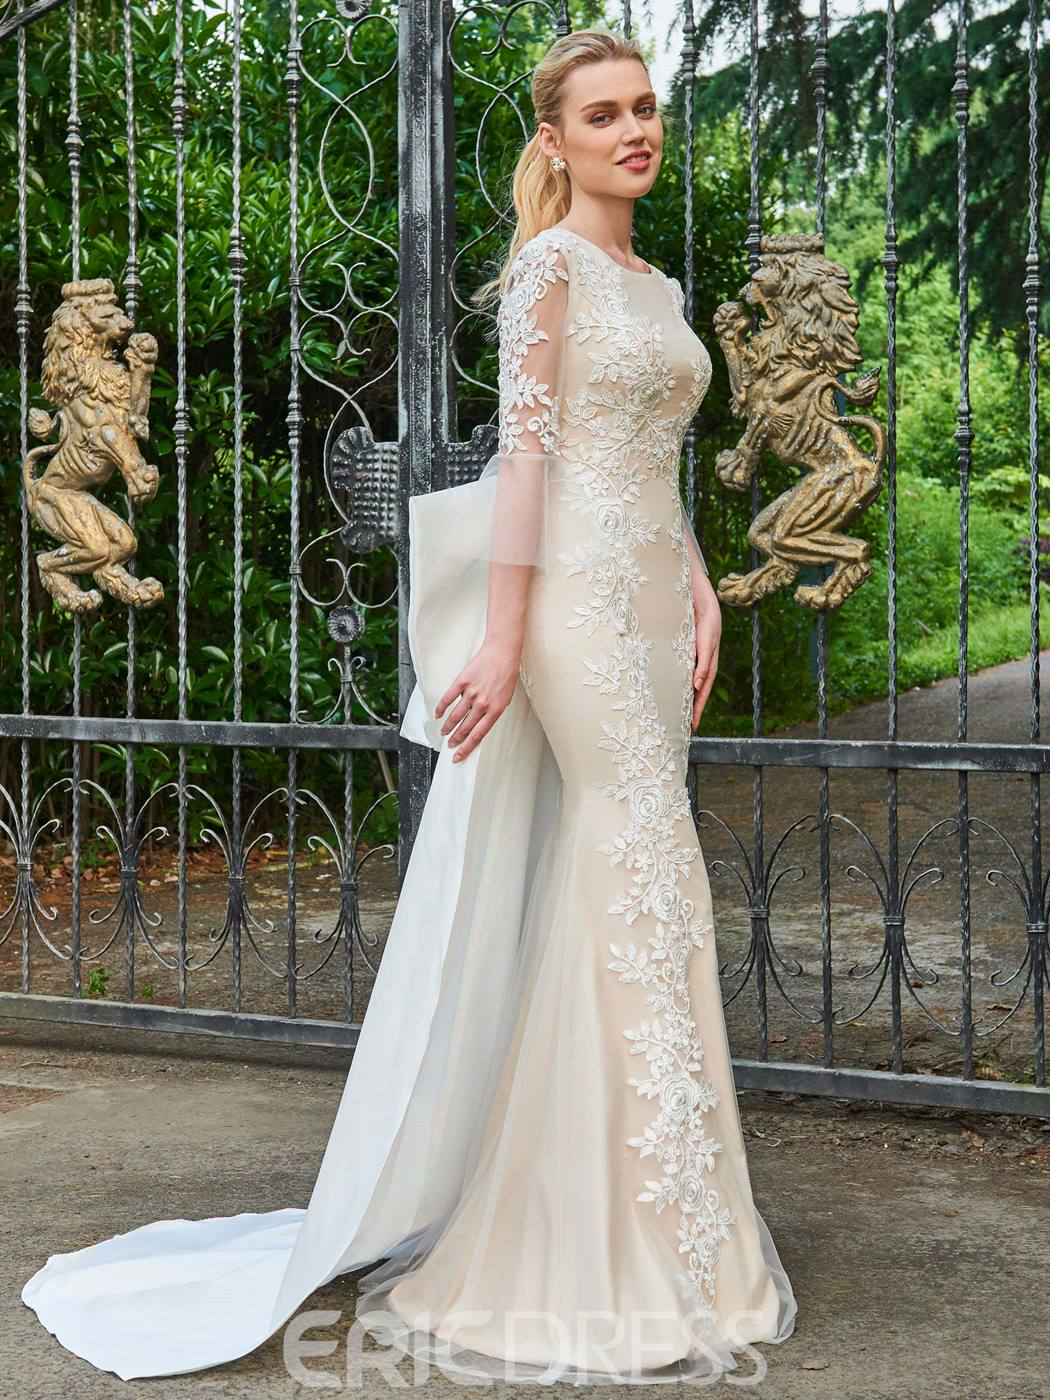 Ericdress Scoop Sheath 3/4 Length Sleeves Appliques Wedding Dress